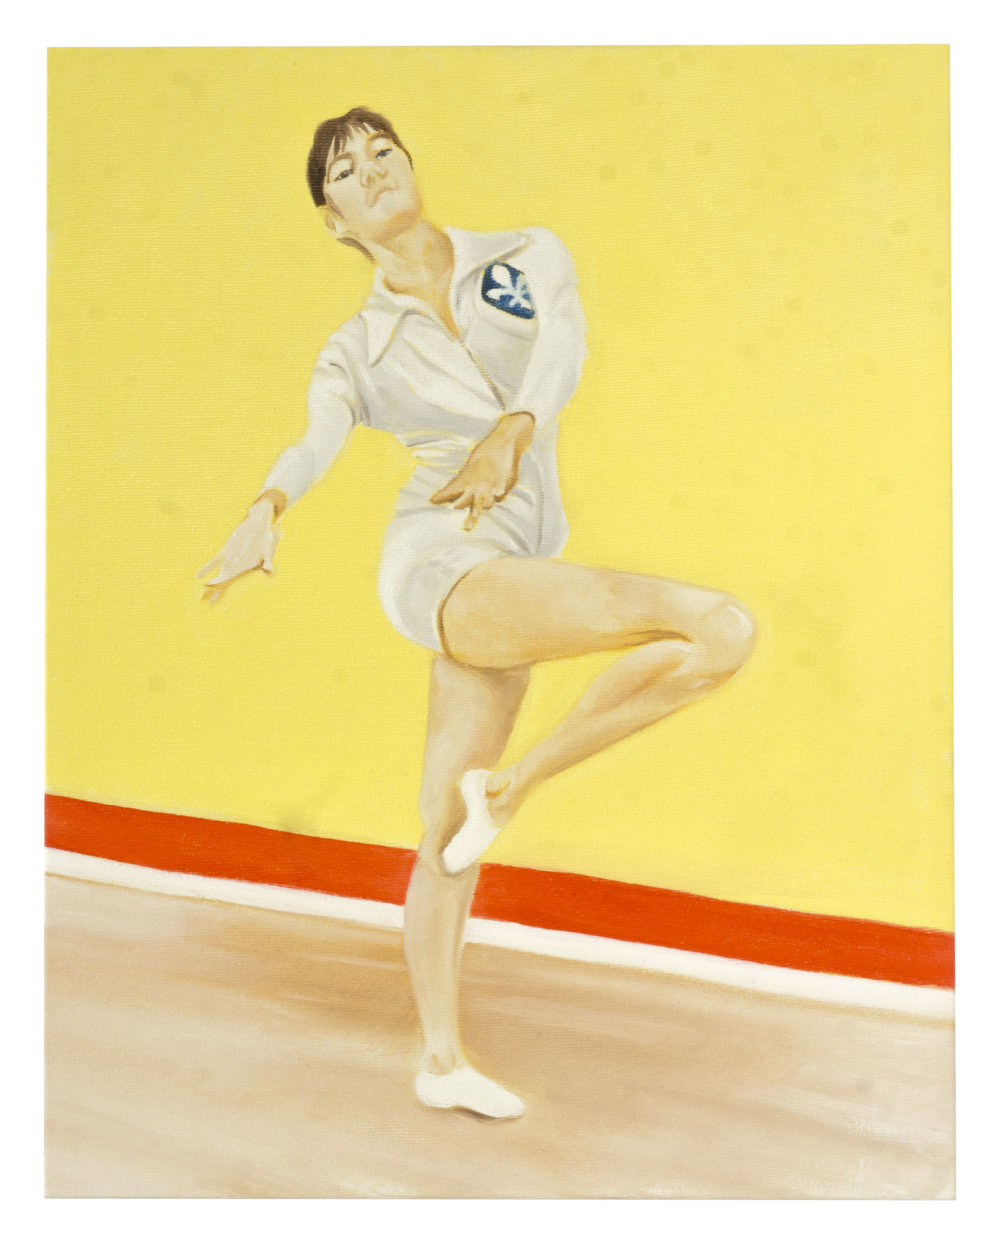 """MY MOTHER, A YOUNG GYMNAST 11"""" x 14"""" Oil on Canvas $300.00 